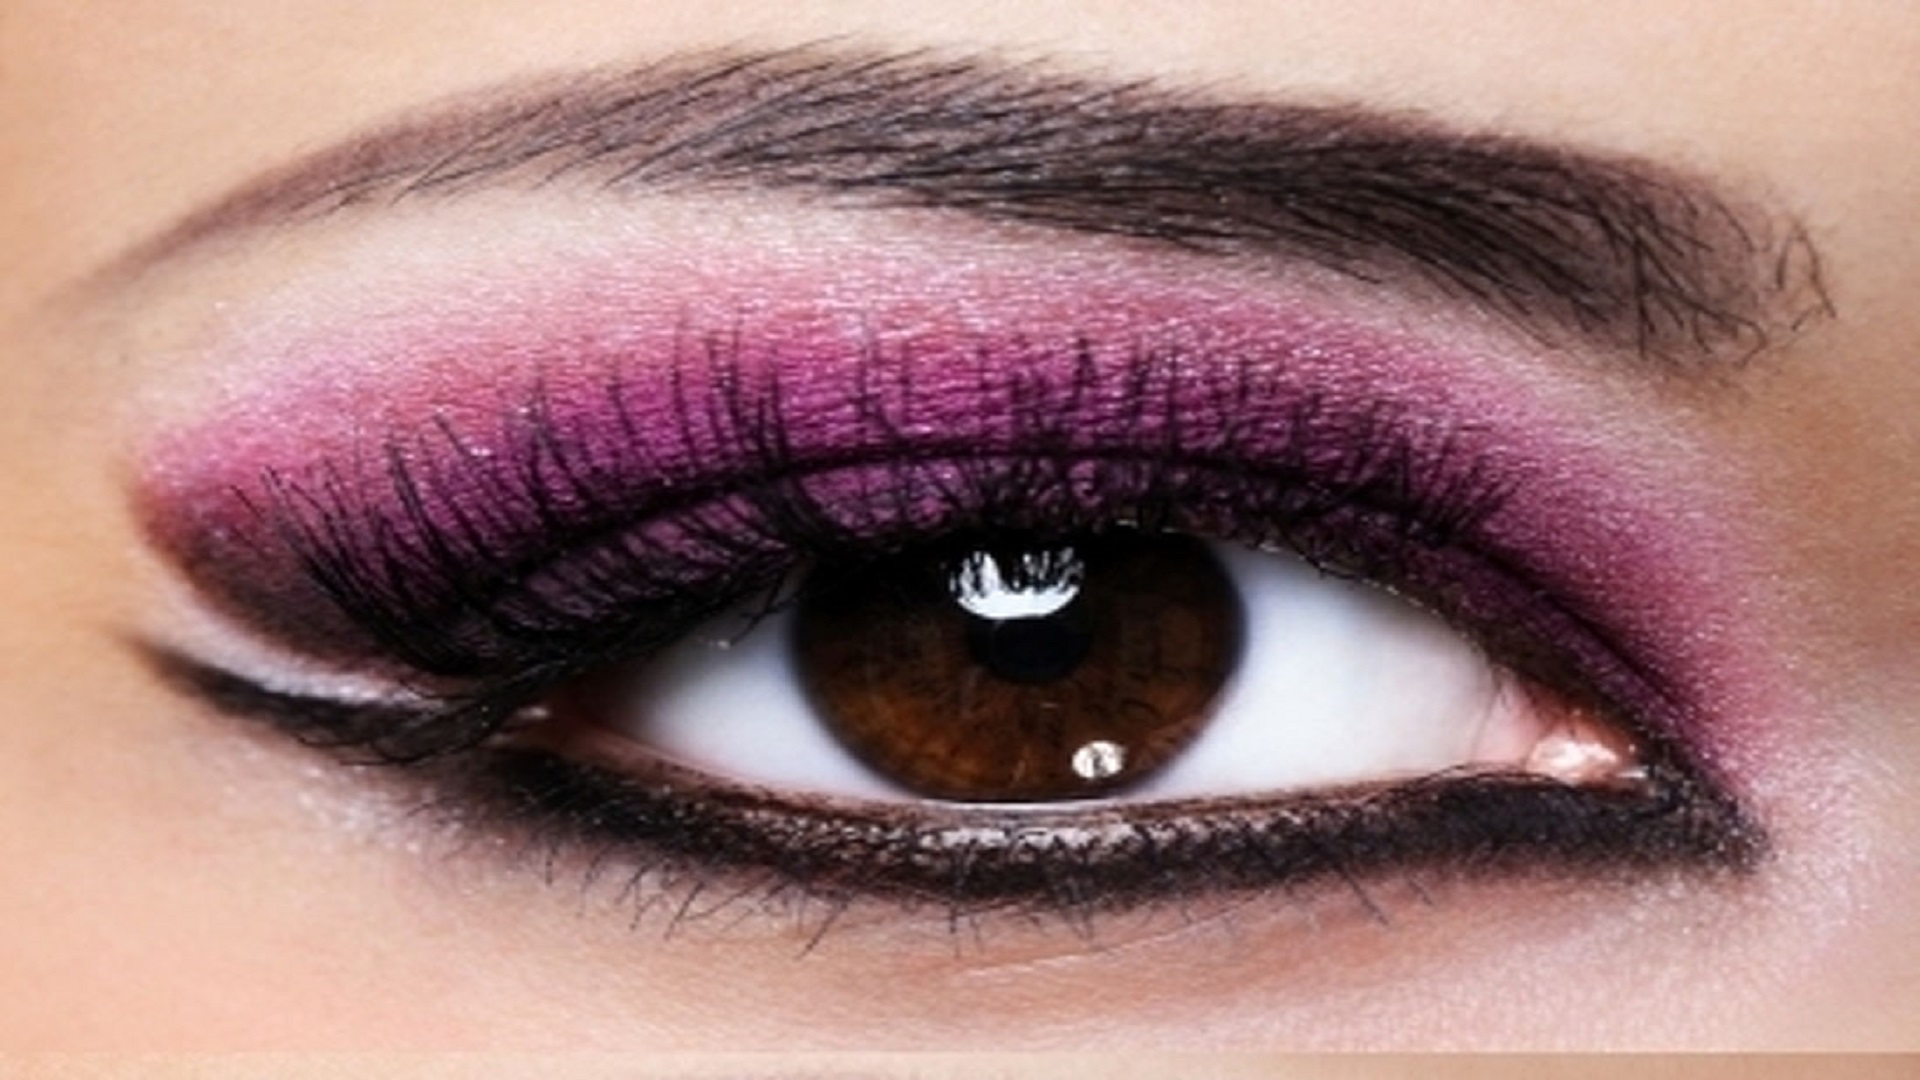 smokey-eye-makeup-with-purple-and-black-color-free-best-hd